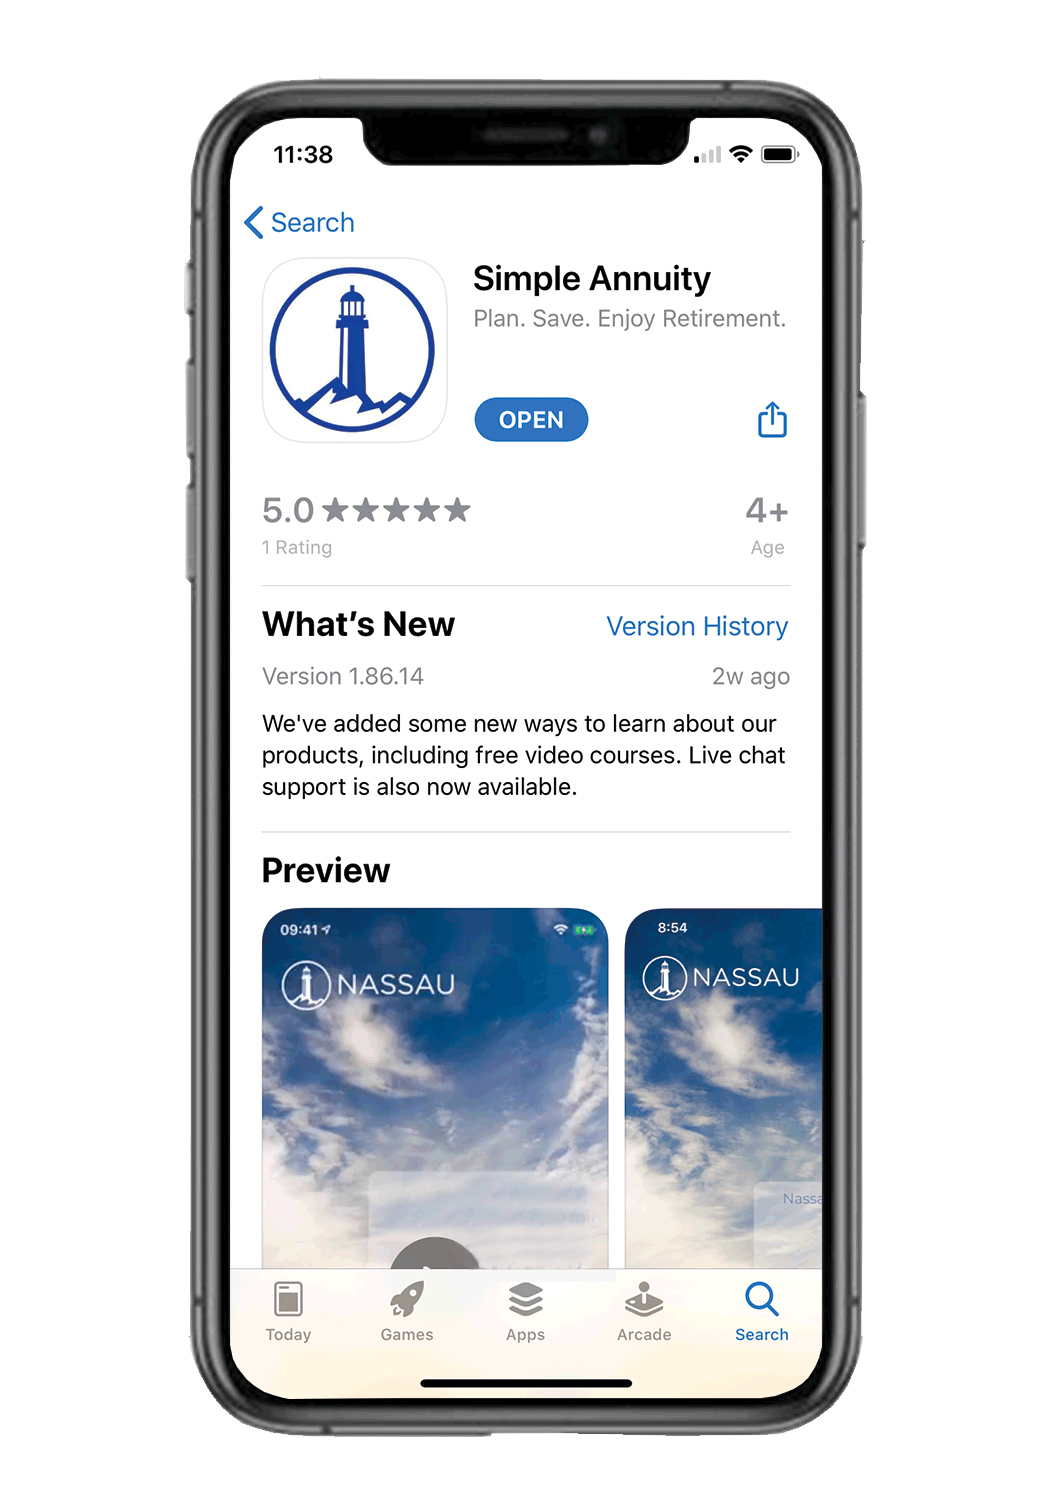 Simple Annuity Mobile APP